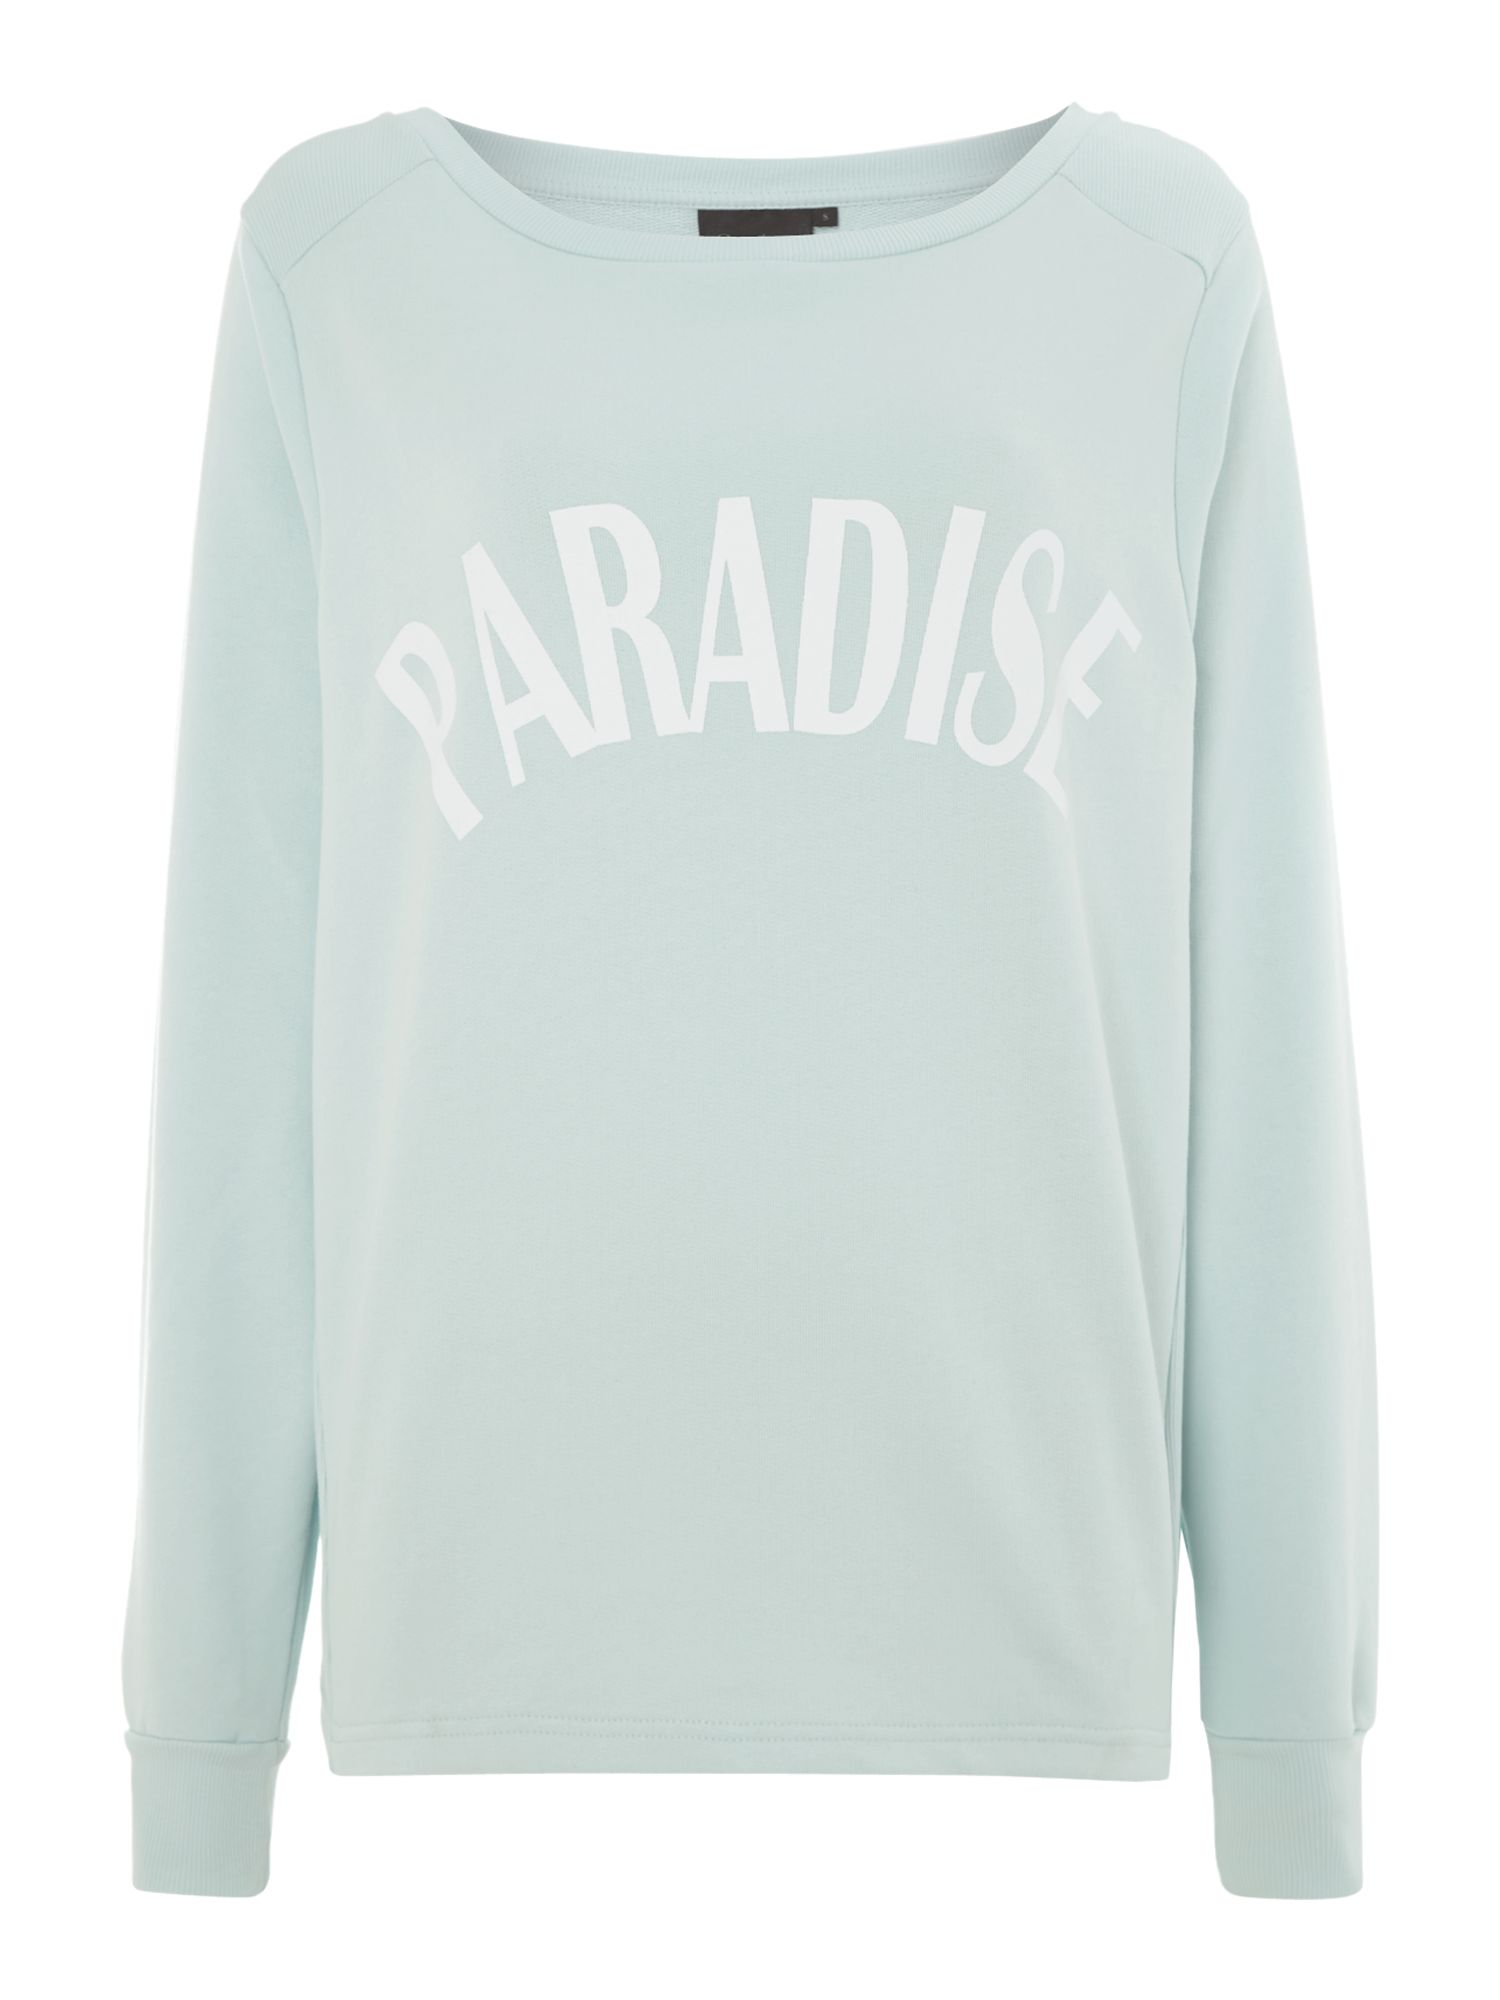 Paradise sweat top